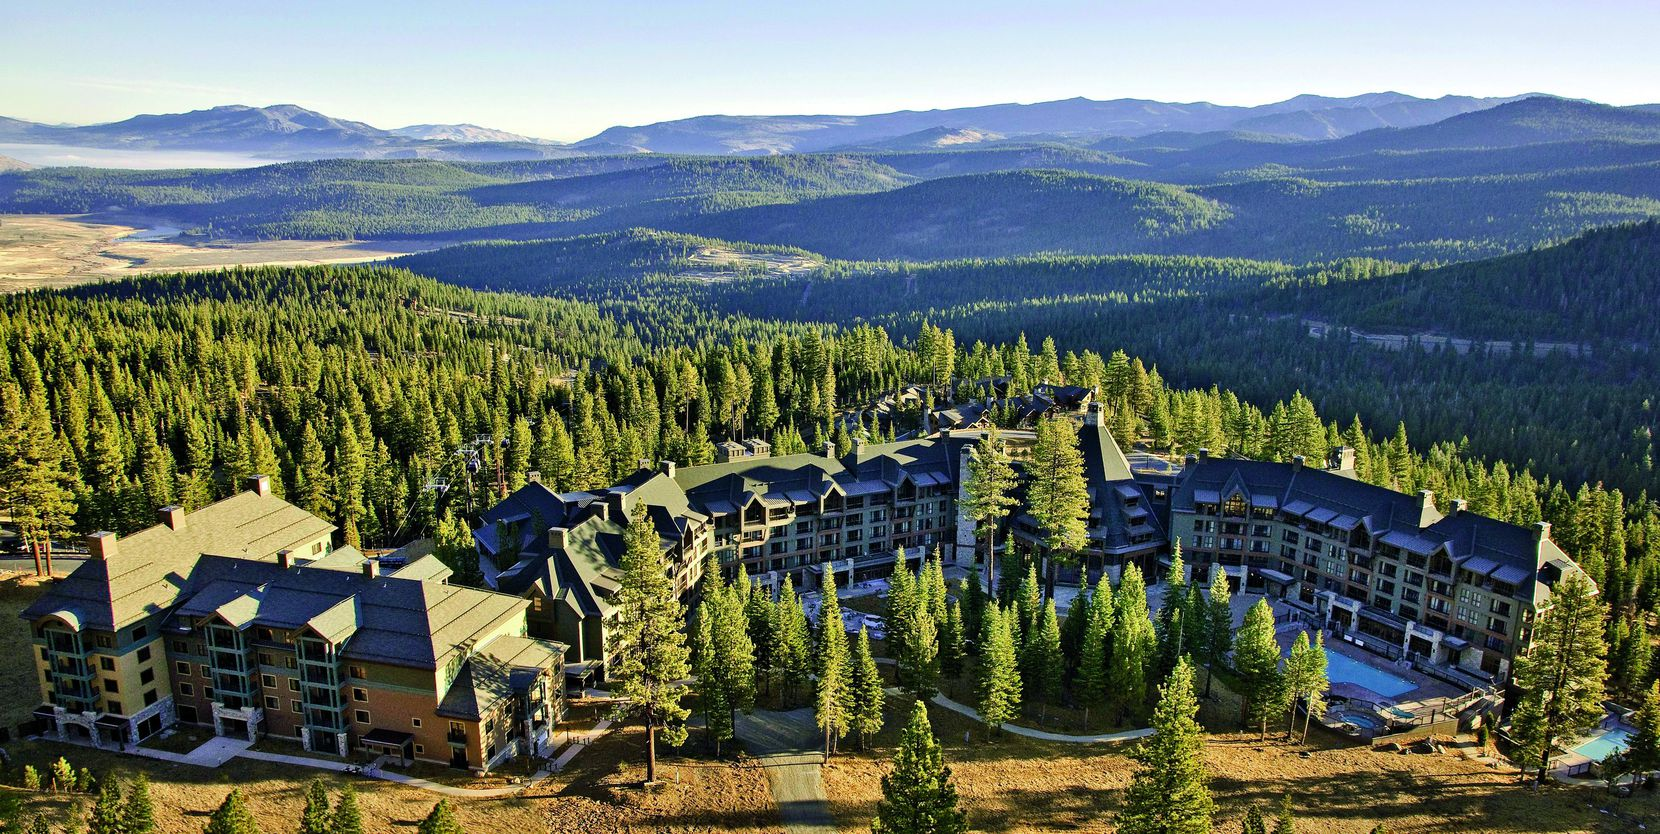 Braemar Hotels & Resorts has 13 resort properties in six states and the U.S. Virgin Islands, including the Ritz-Carlton Lake Tahoe.